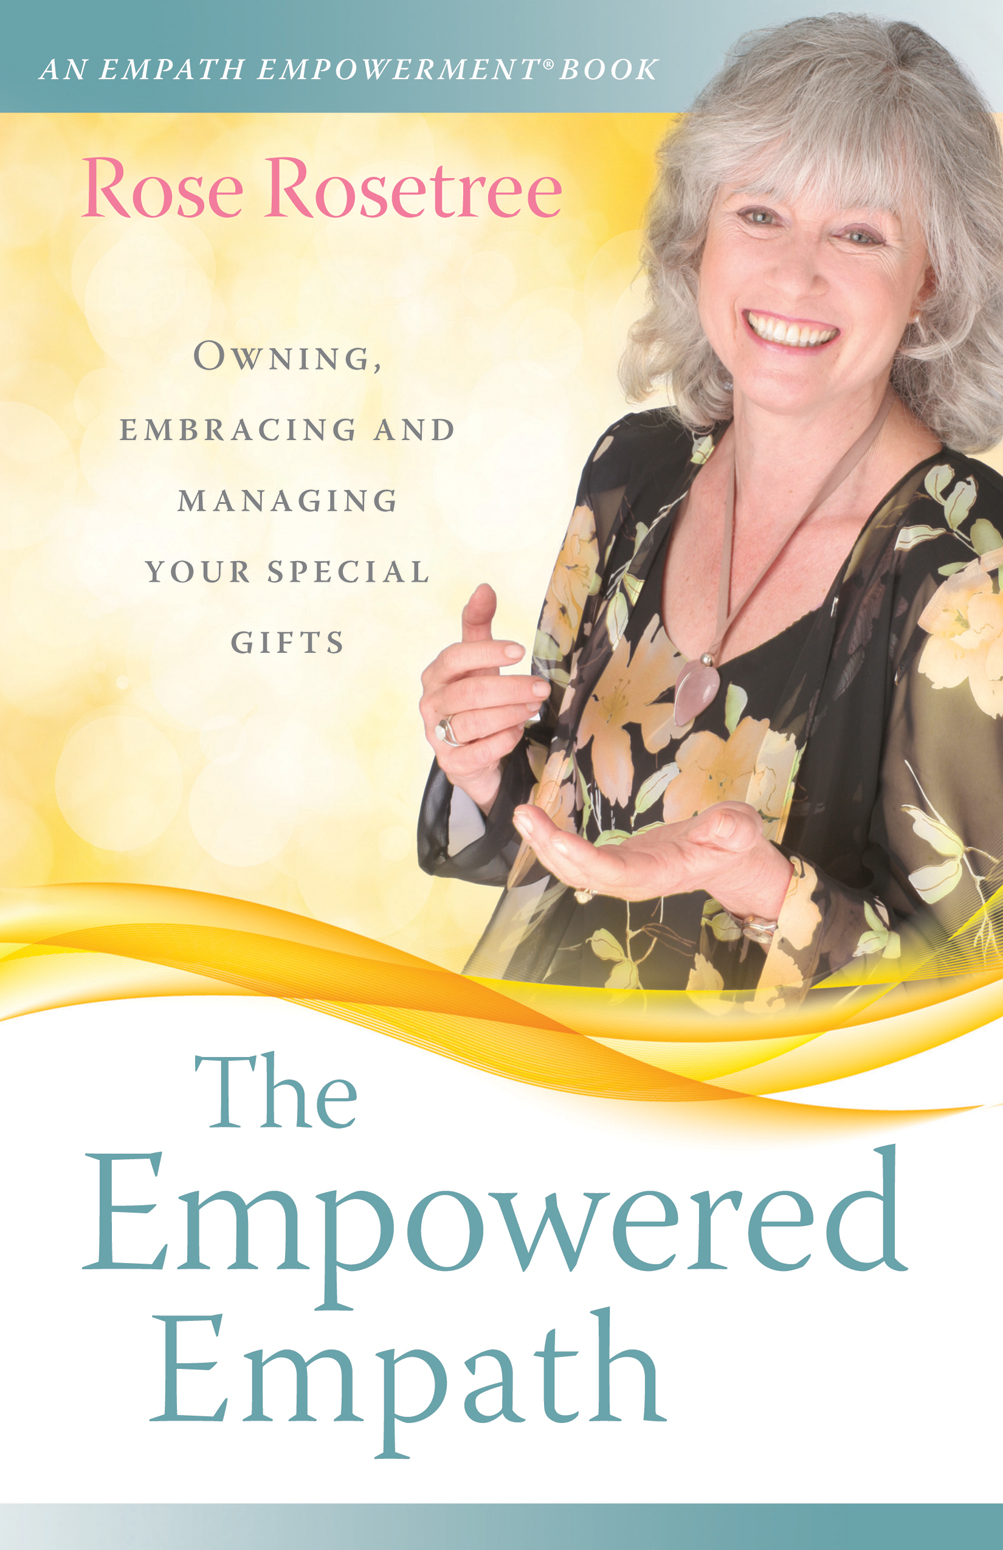 Cover of The Empowered Empath by Rose Rosetree